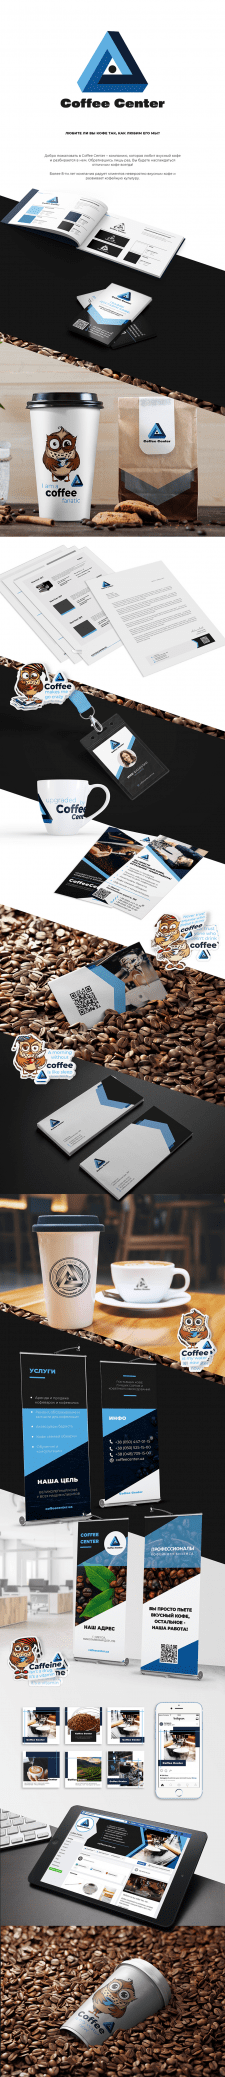 Branding for the Coffee Center